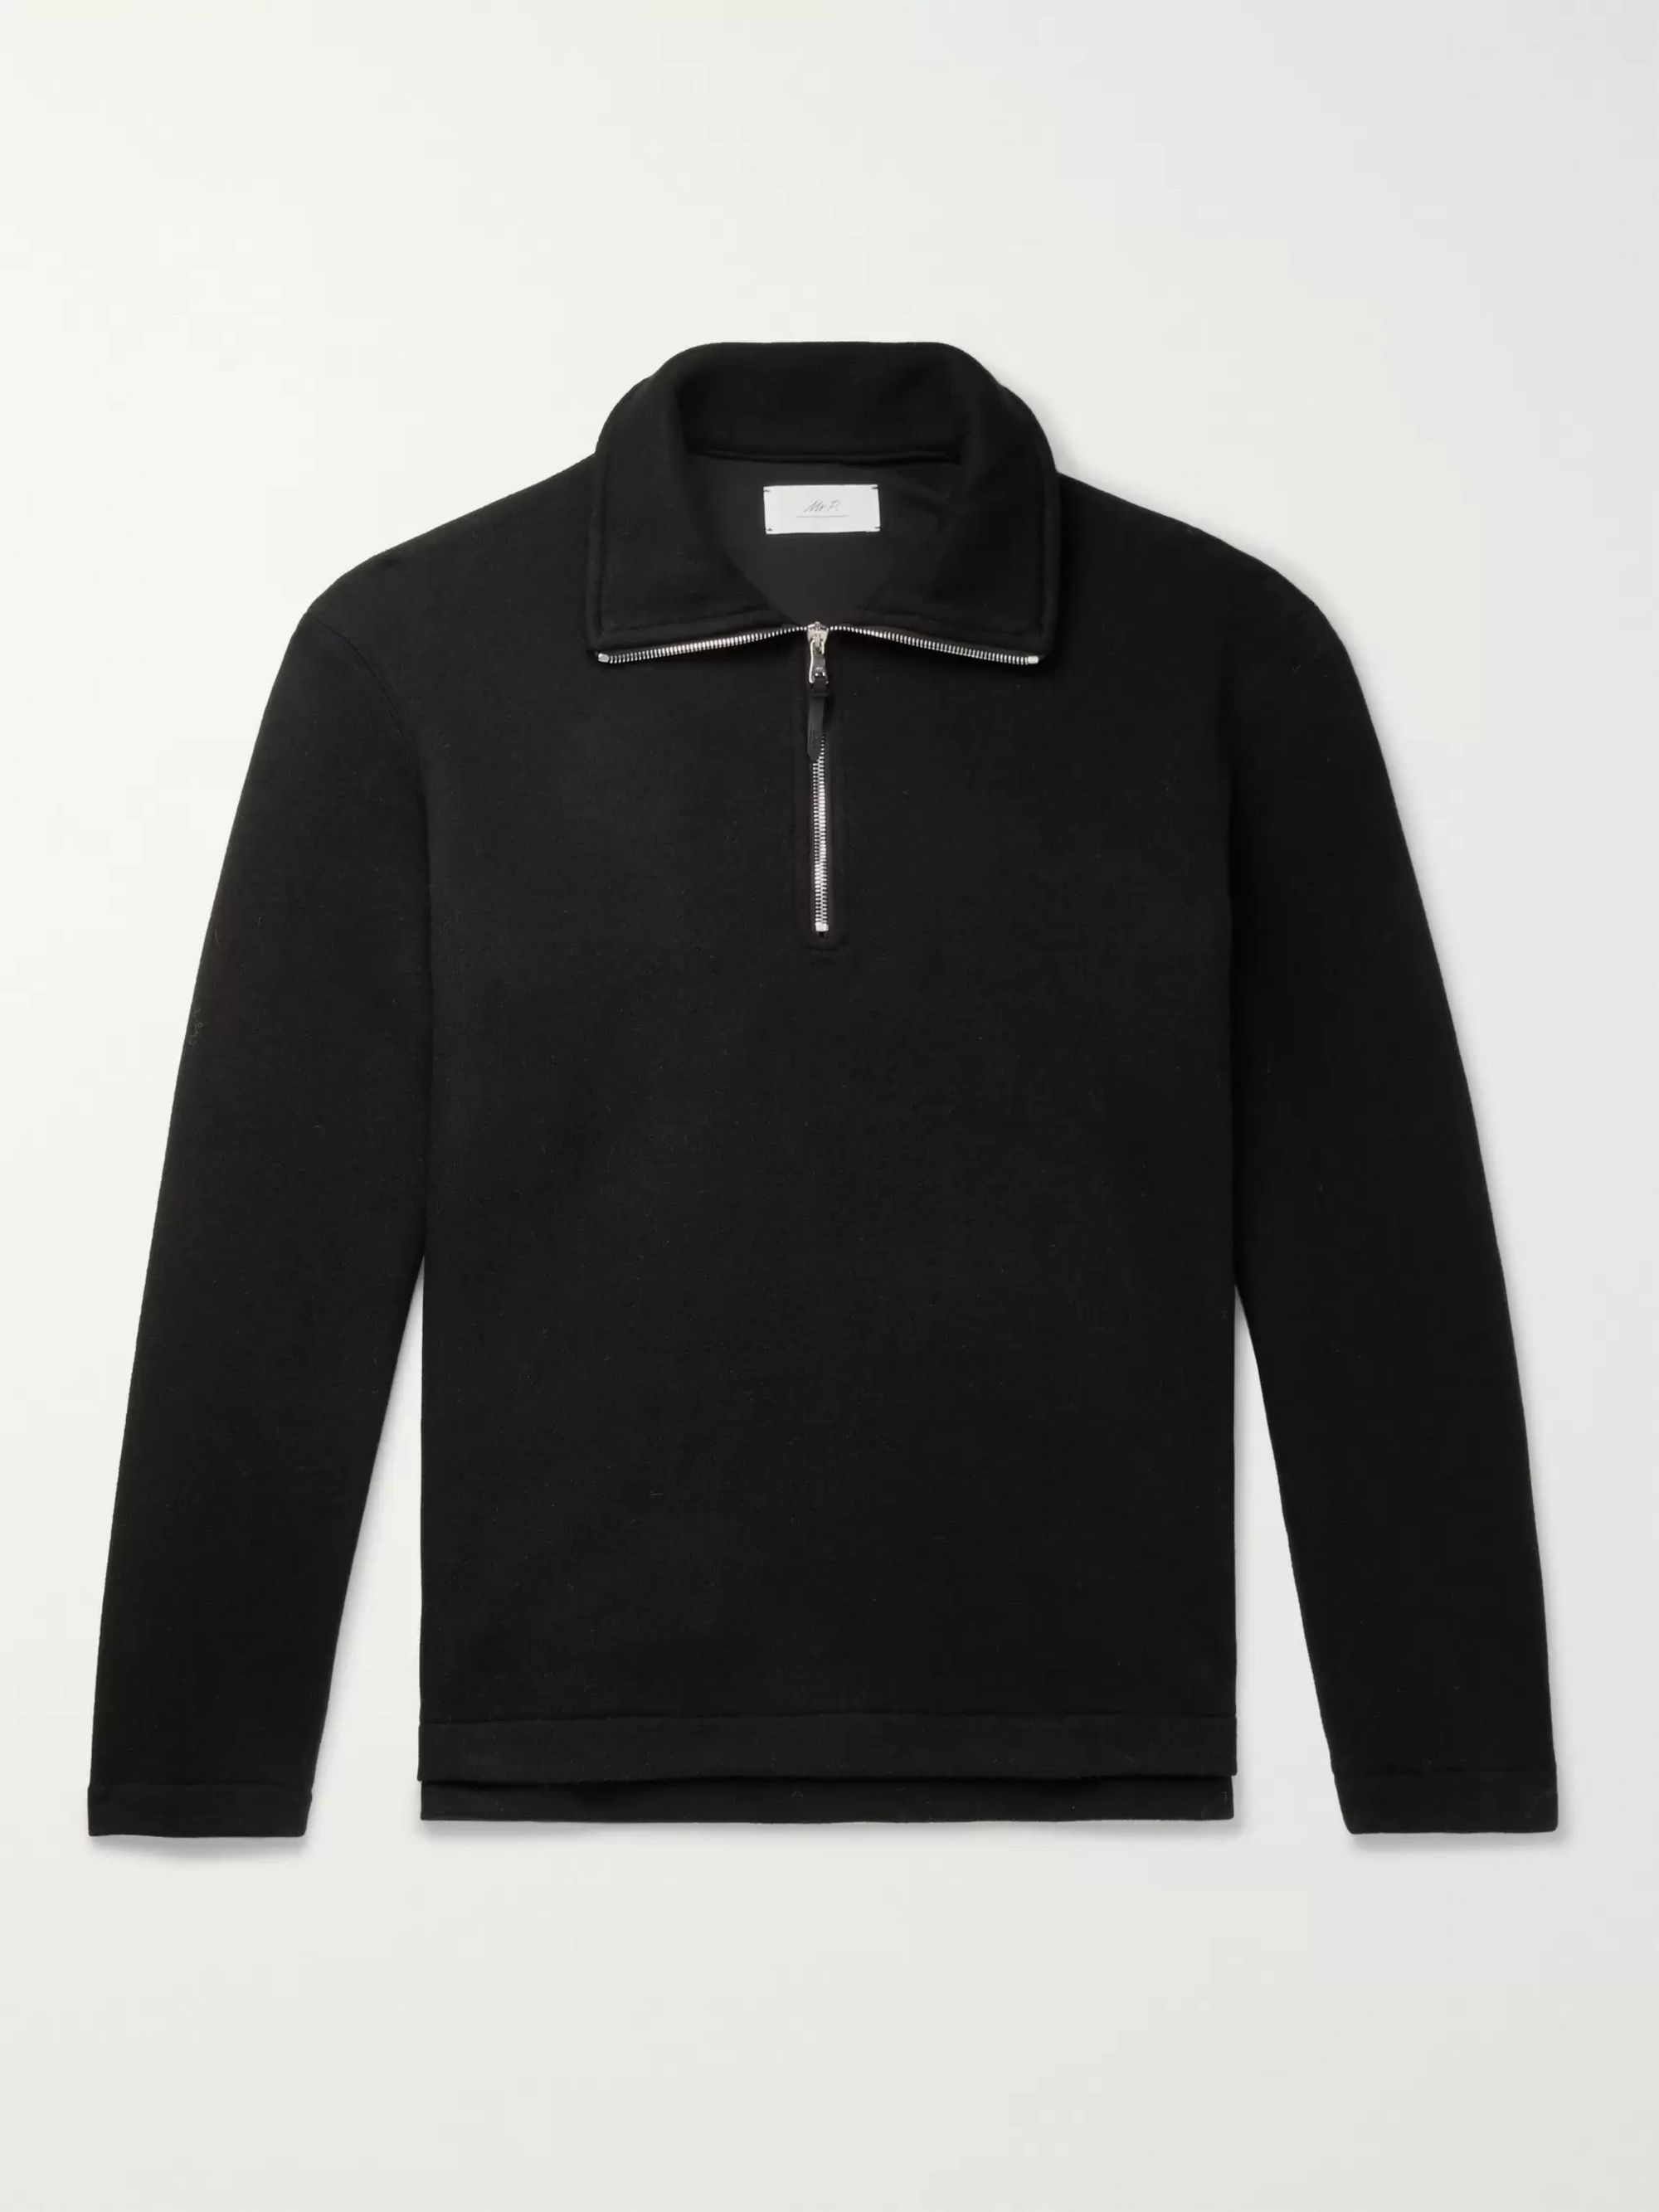 Mr P. Fleece-Back Wool-Blend Half-Zip Sweatshirt